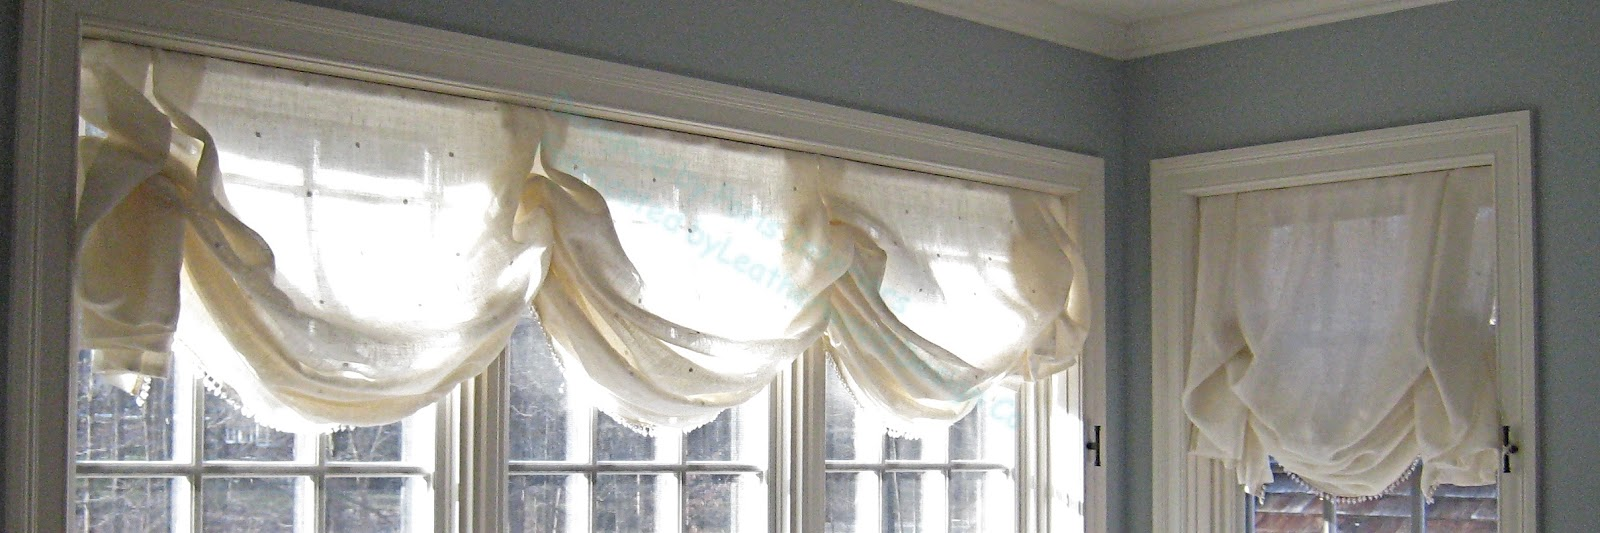 This Lined Cotton Sheer Shade Has Deeper Pleats And Tails It Could Be Called A Triple London Was Designed To Complement The Adjacent Single